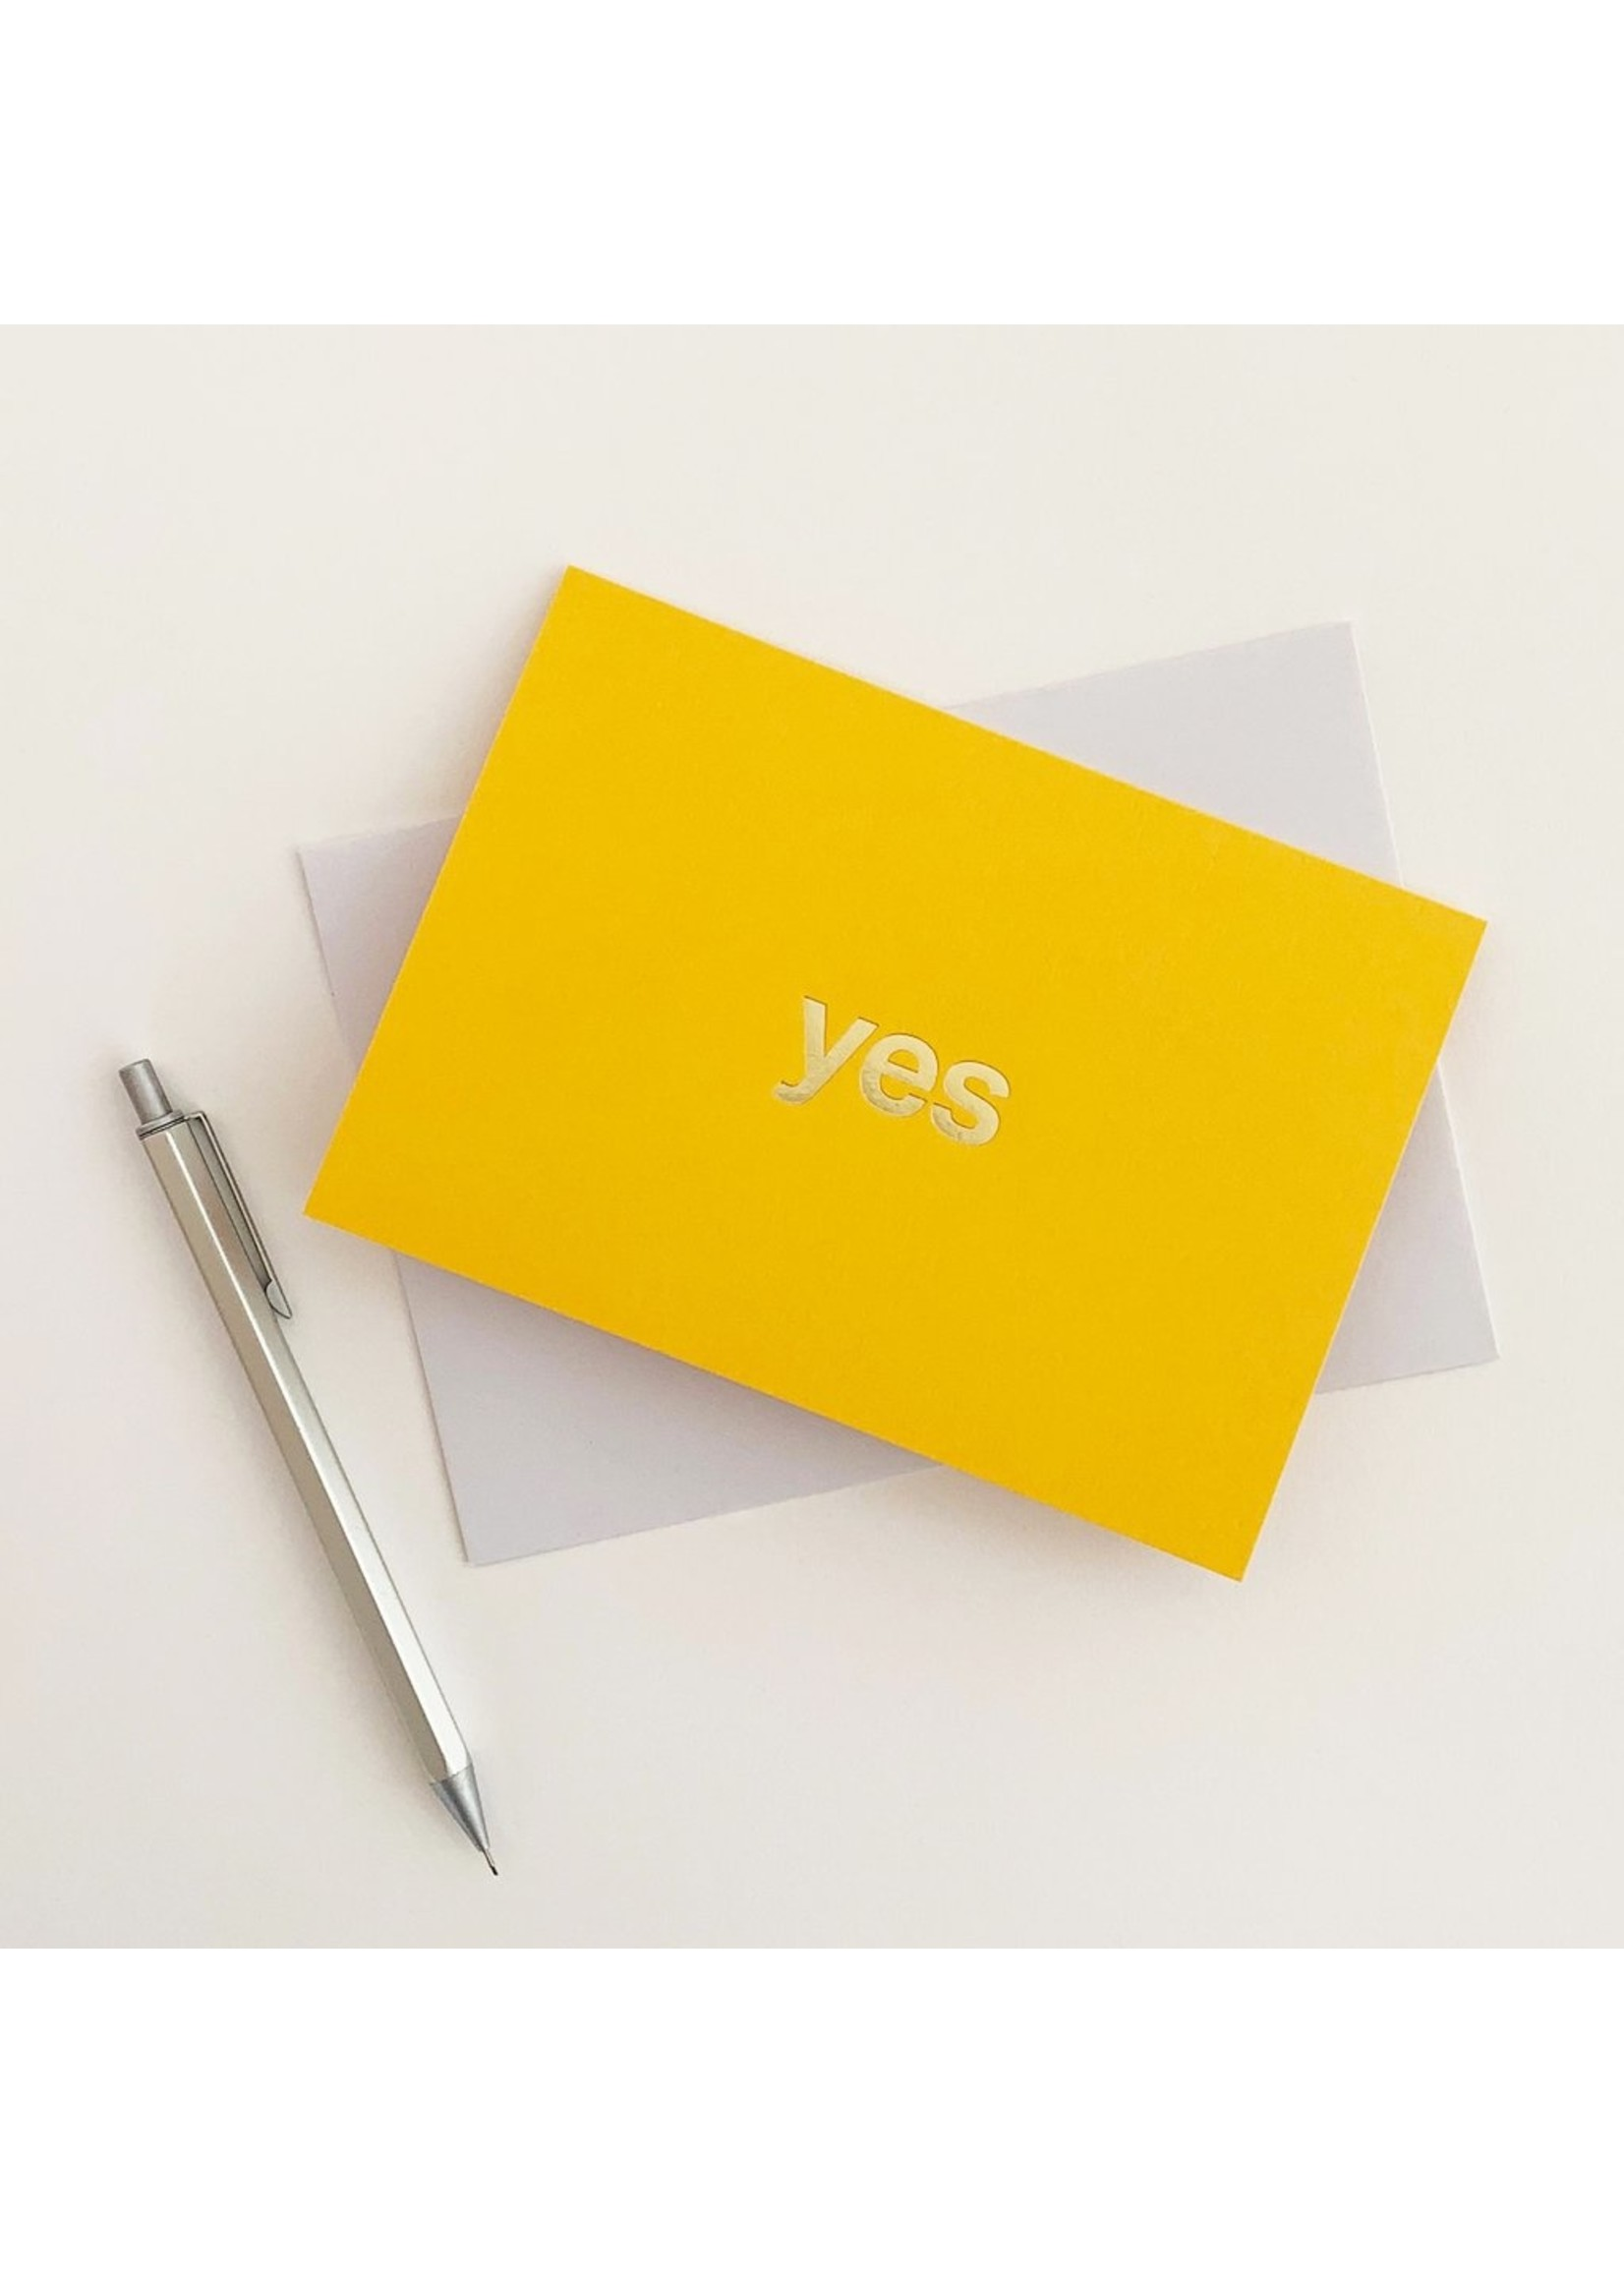 Tom Pigeon Tom Pigeon YES Card - Yellow/Brass